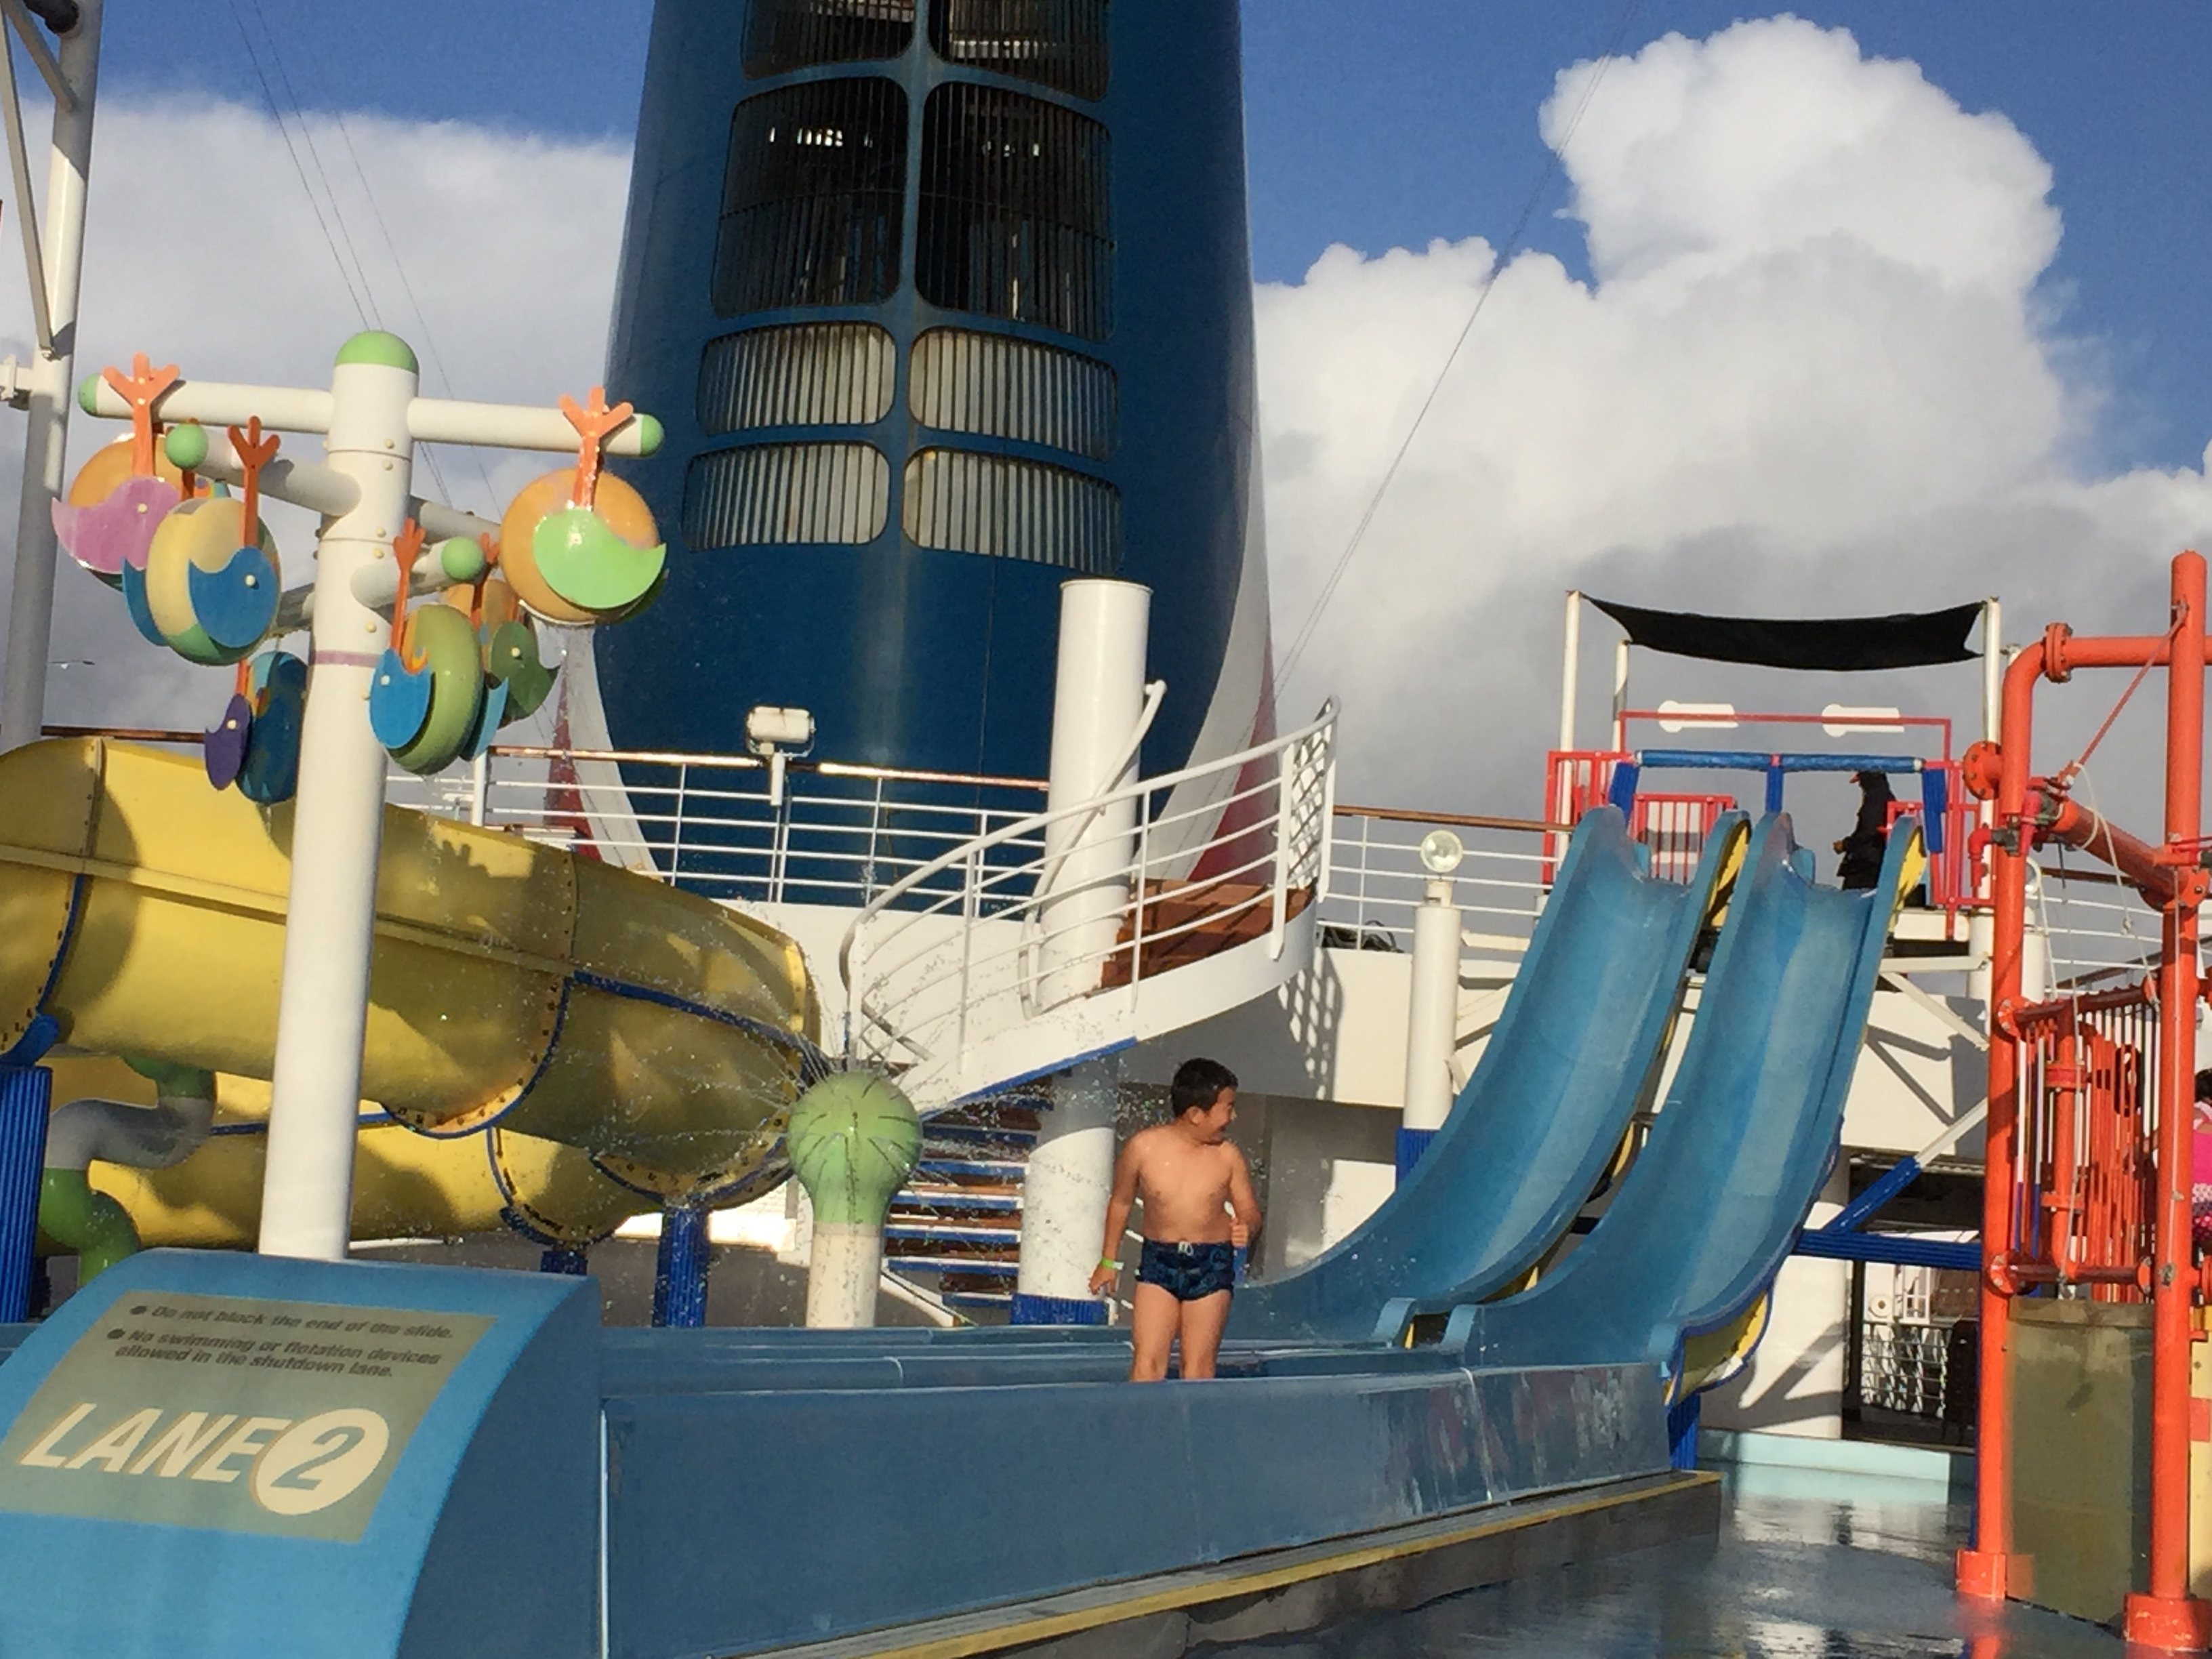 Good Carnival Inspiration Cruise Review